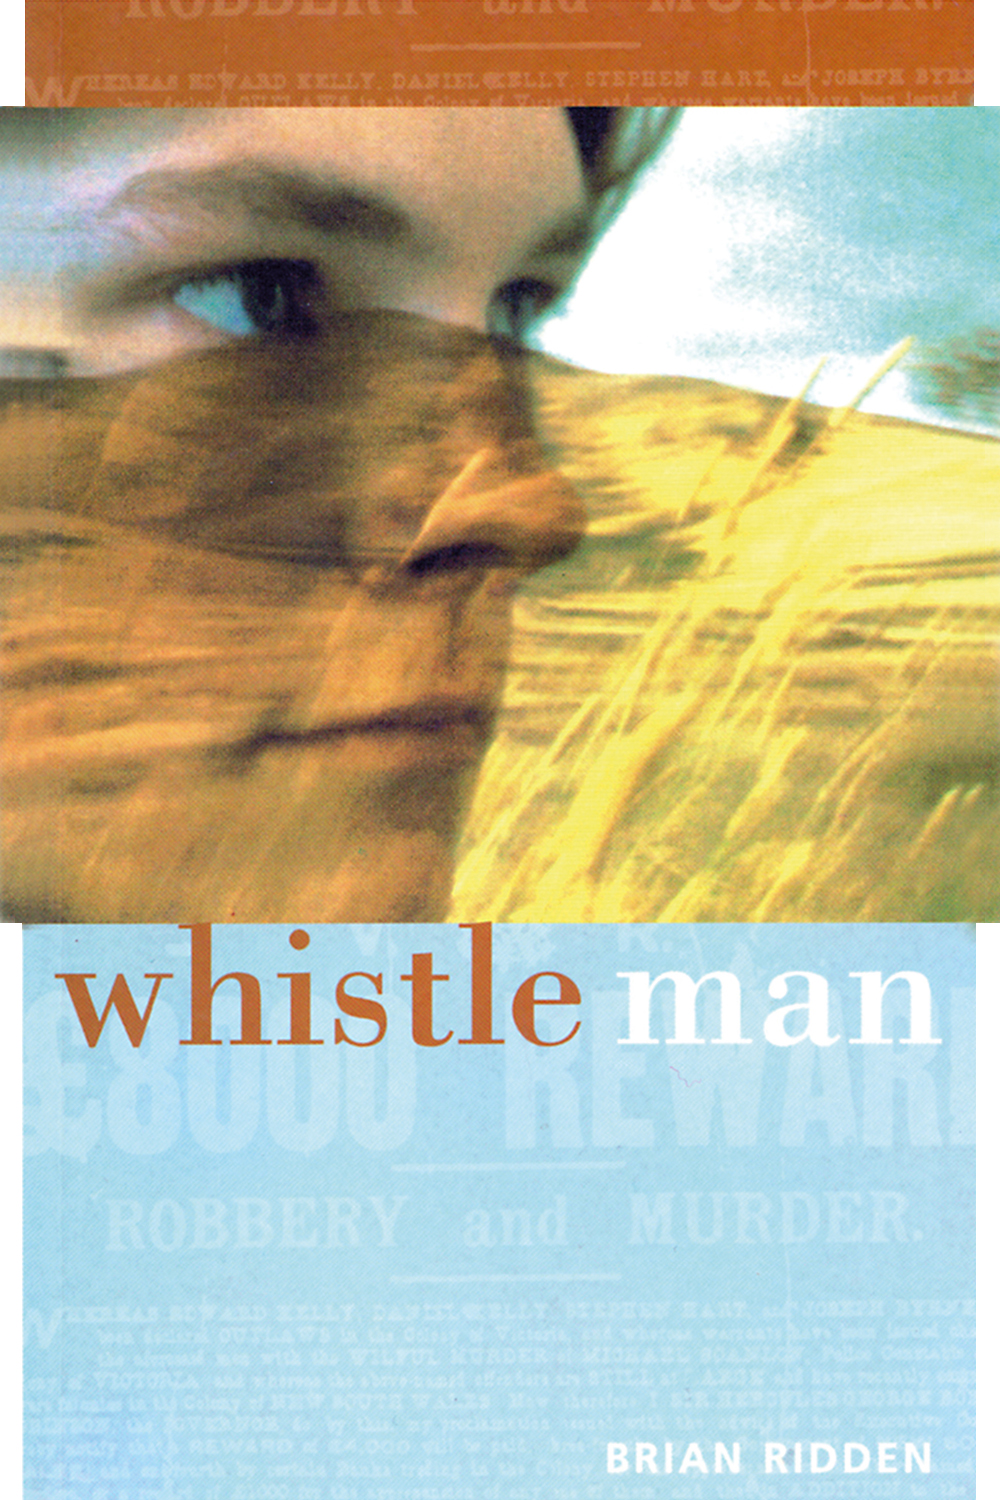 Whistle Man by Brian Ridden